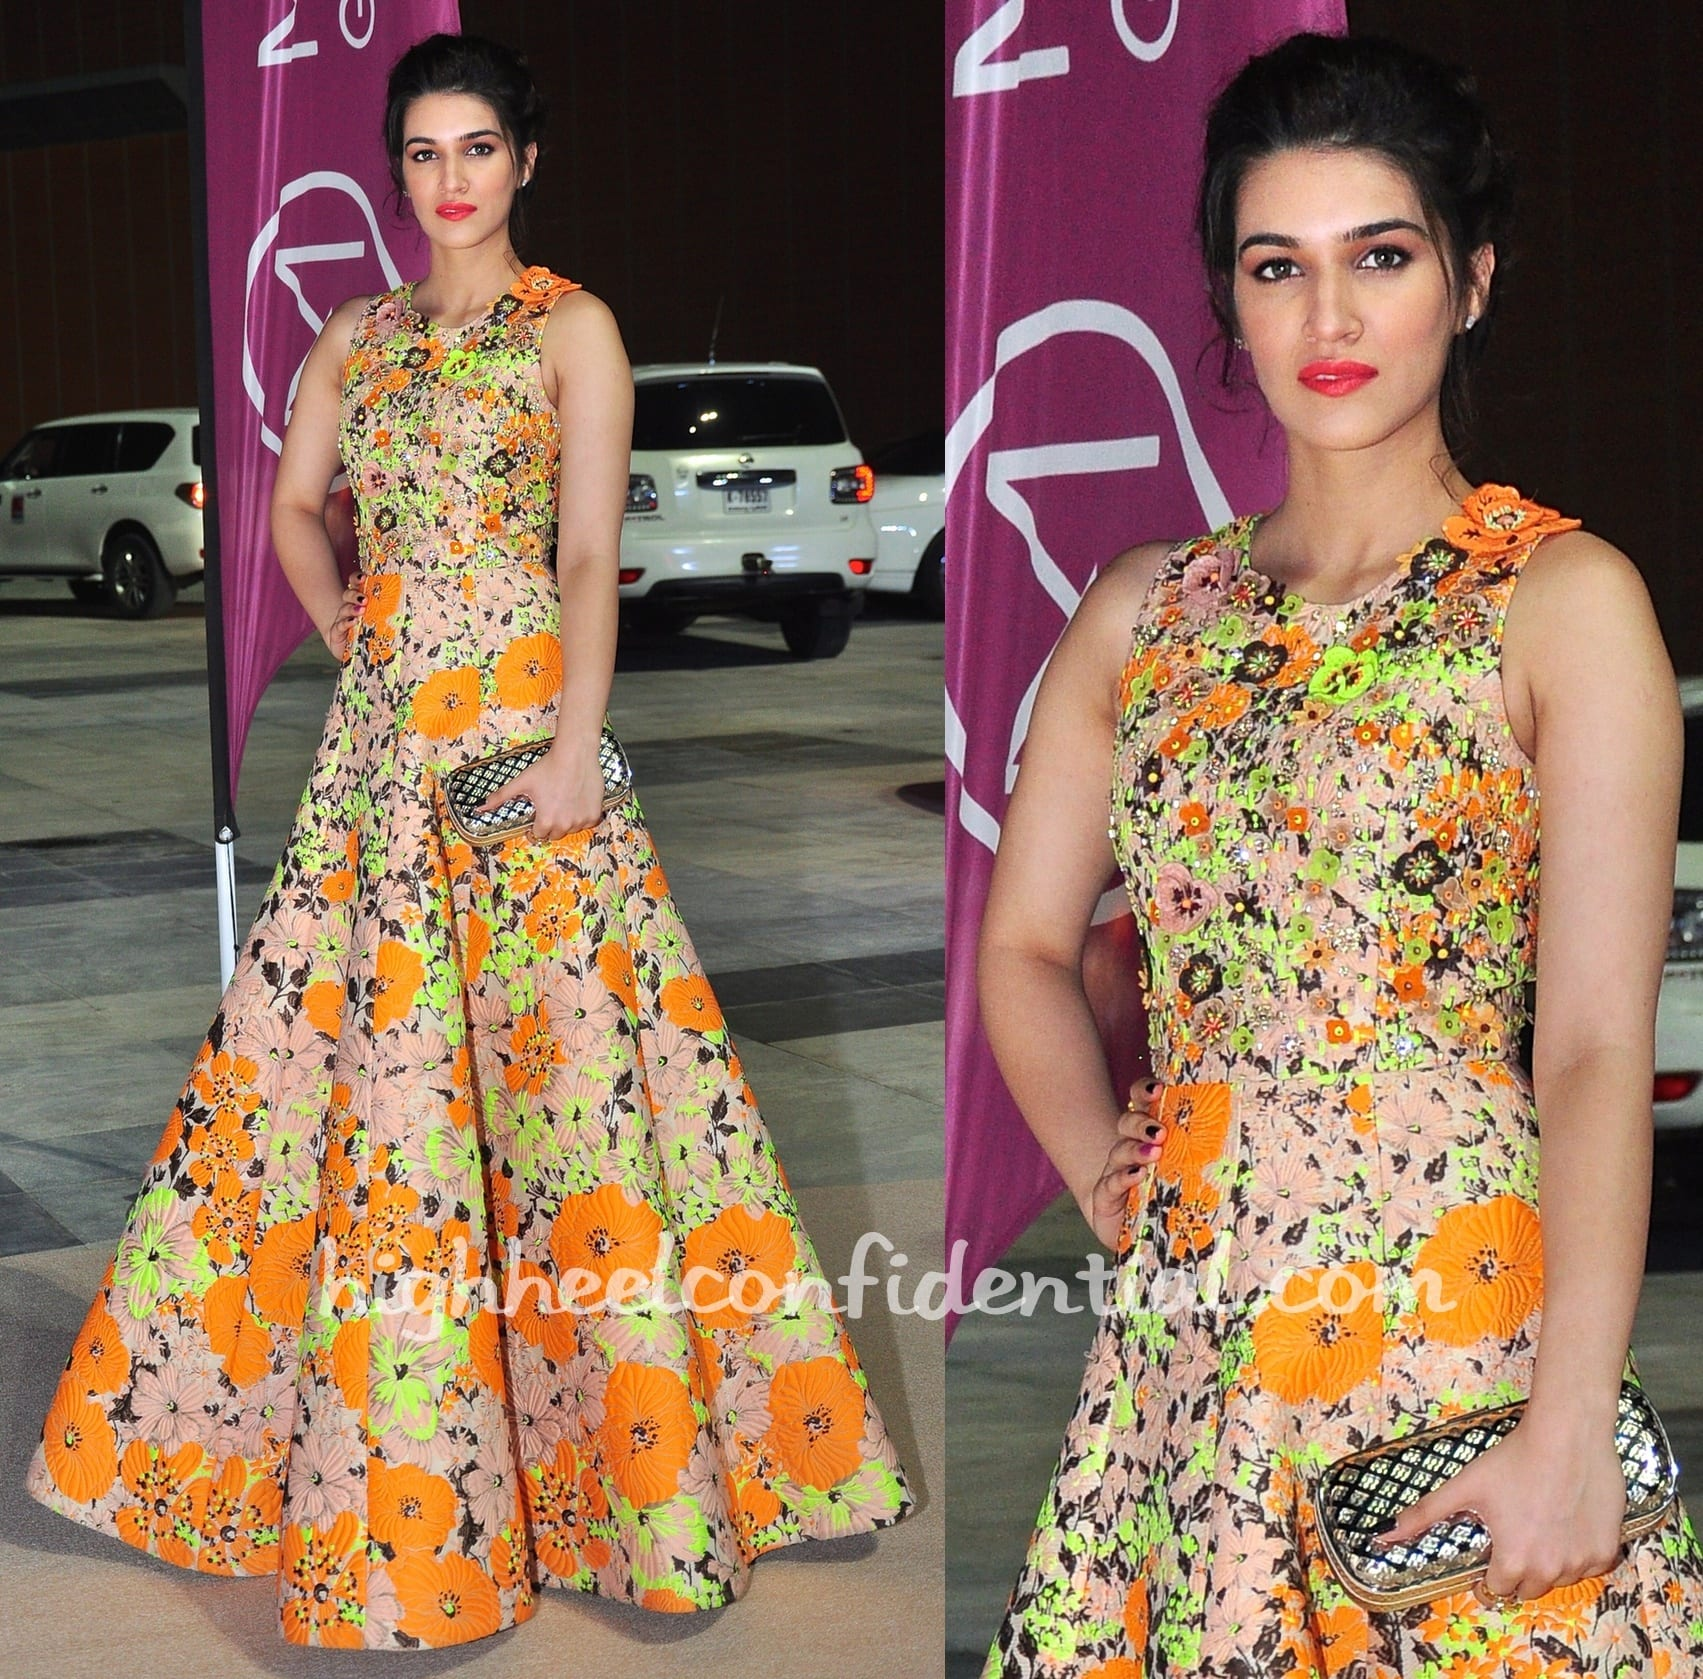 71 Kriti Sanon Pics - 30 Cute Kriti Sanon Outfits and Looks